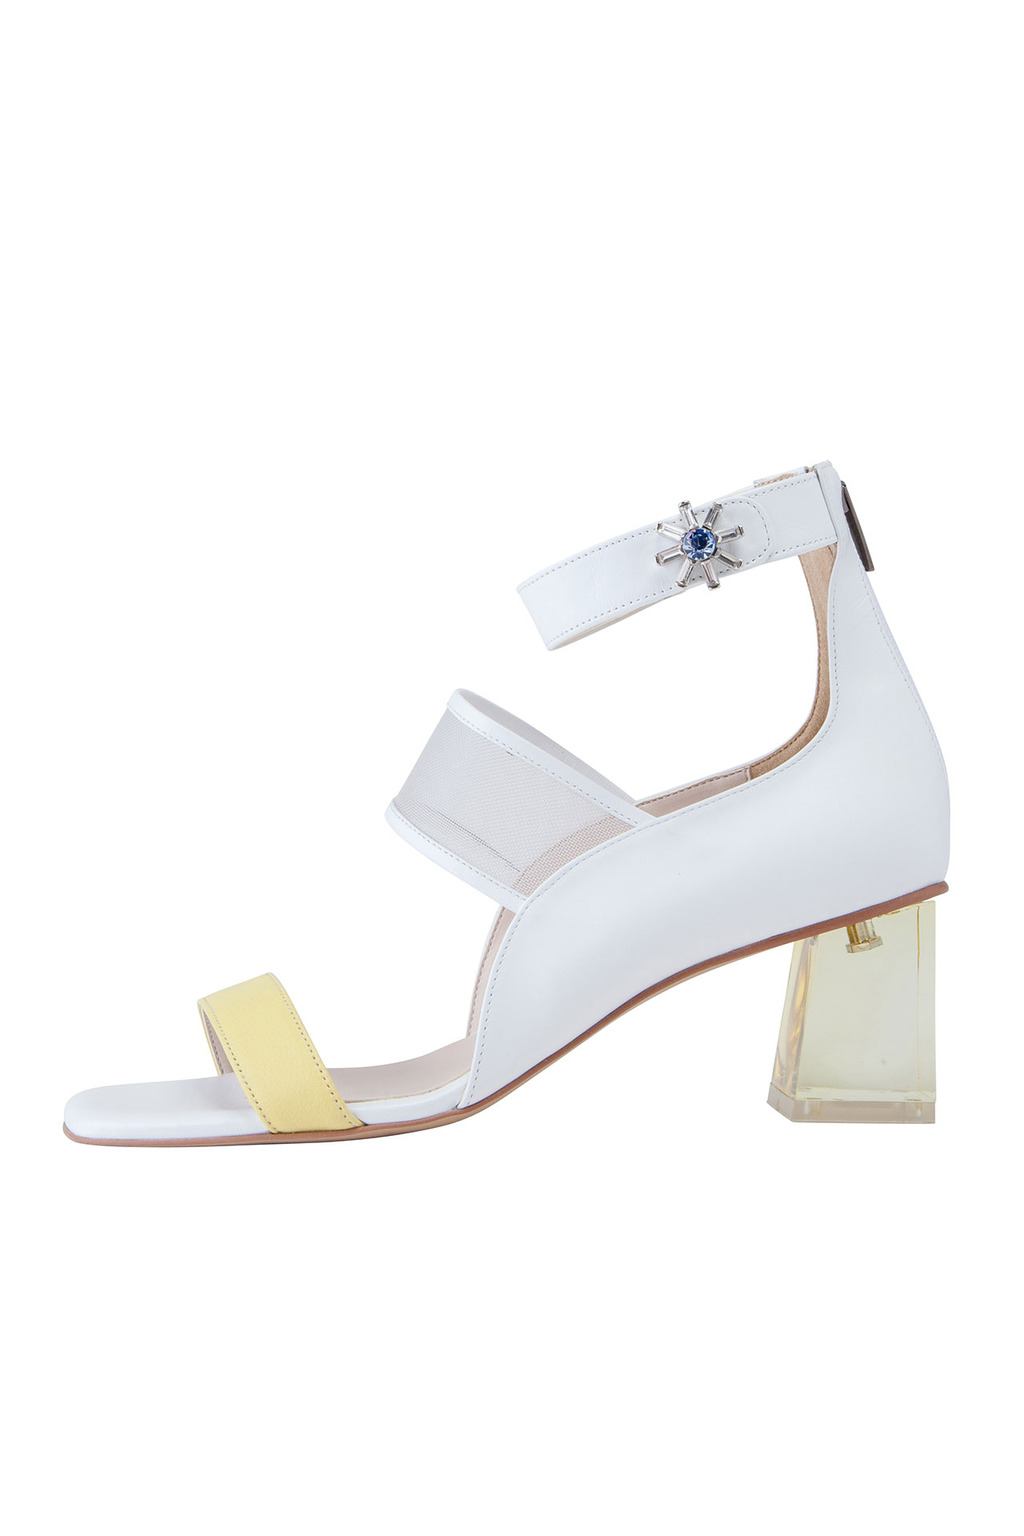 DORATORE Luce White - Women's Shoes : South Korea